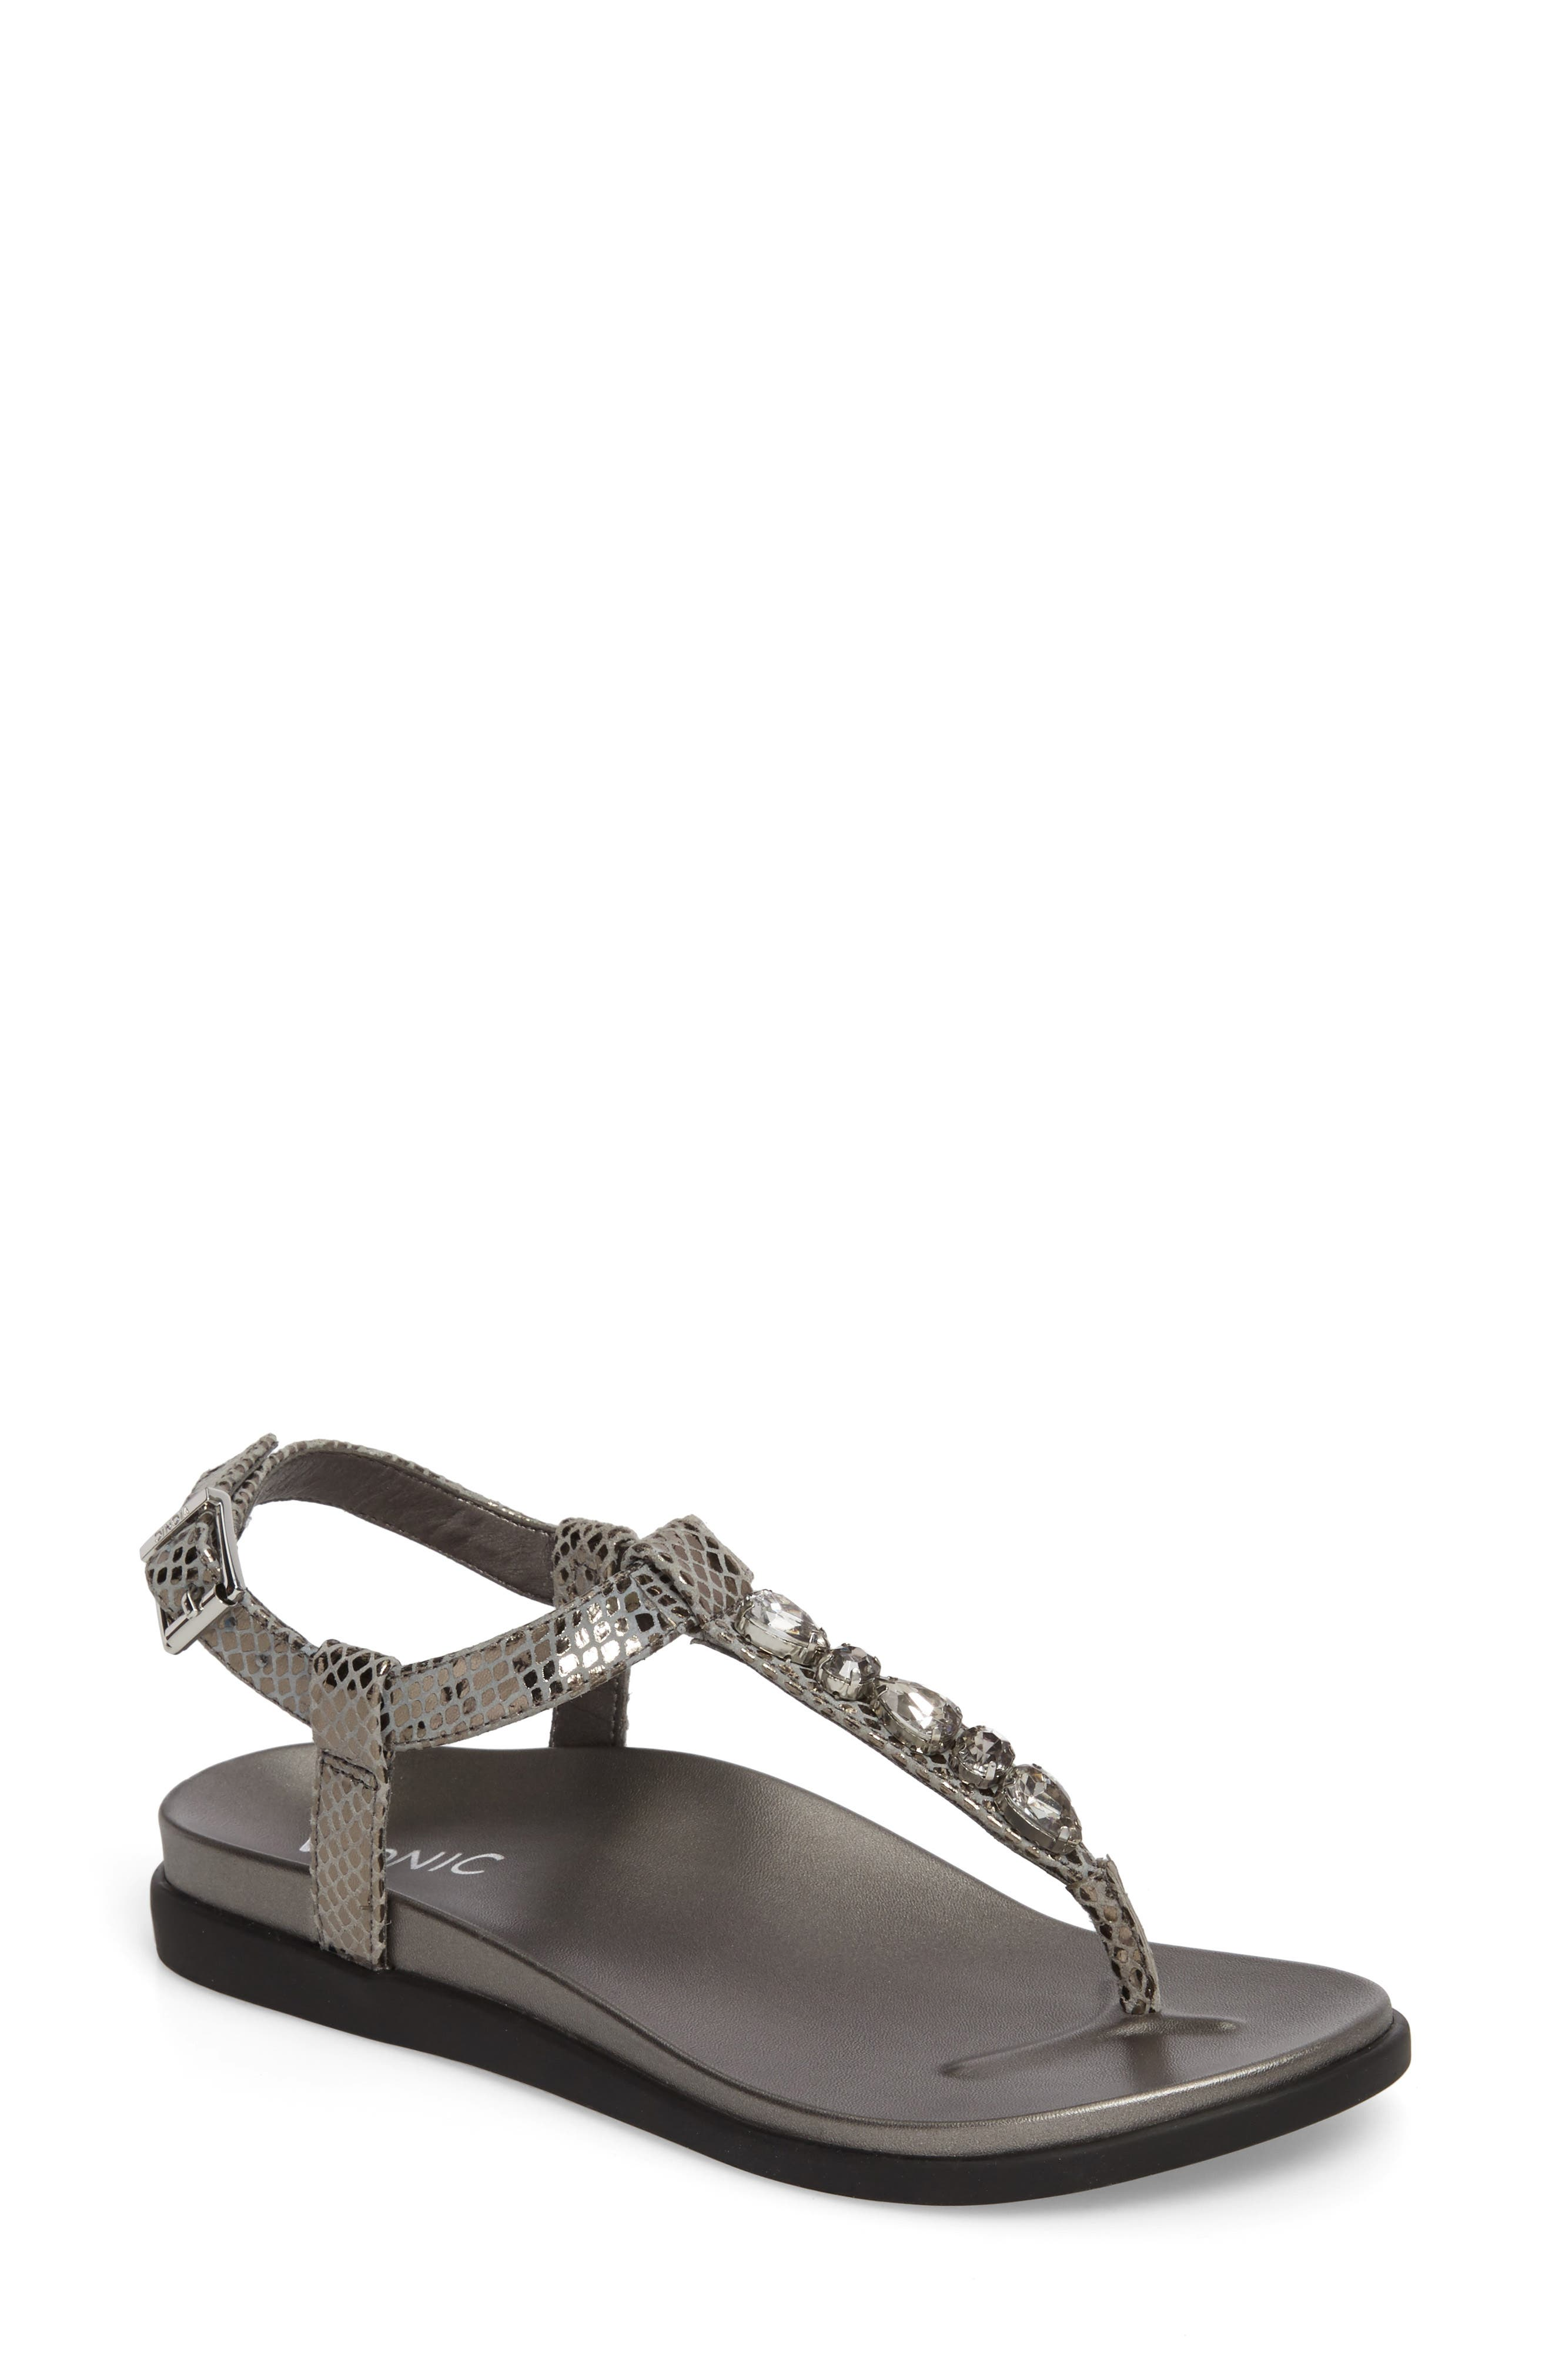 Boca Sandal,                             Main thumbnail 1, color,                             Pewter Snake Leather